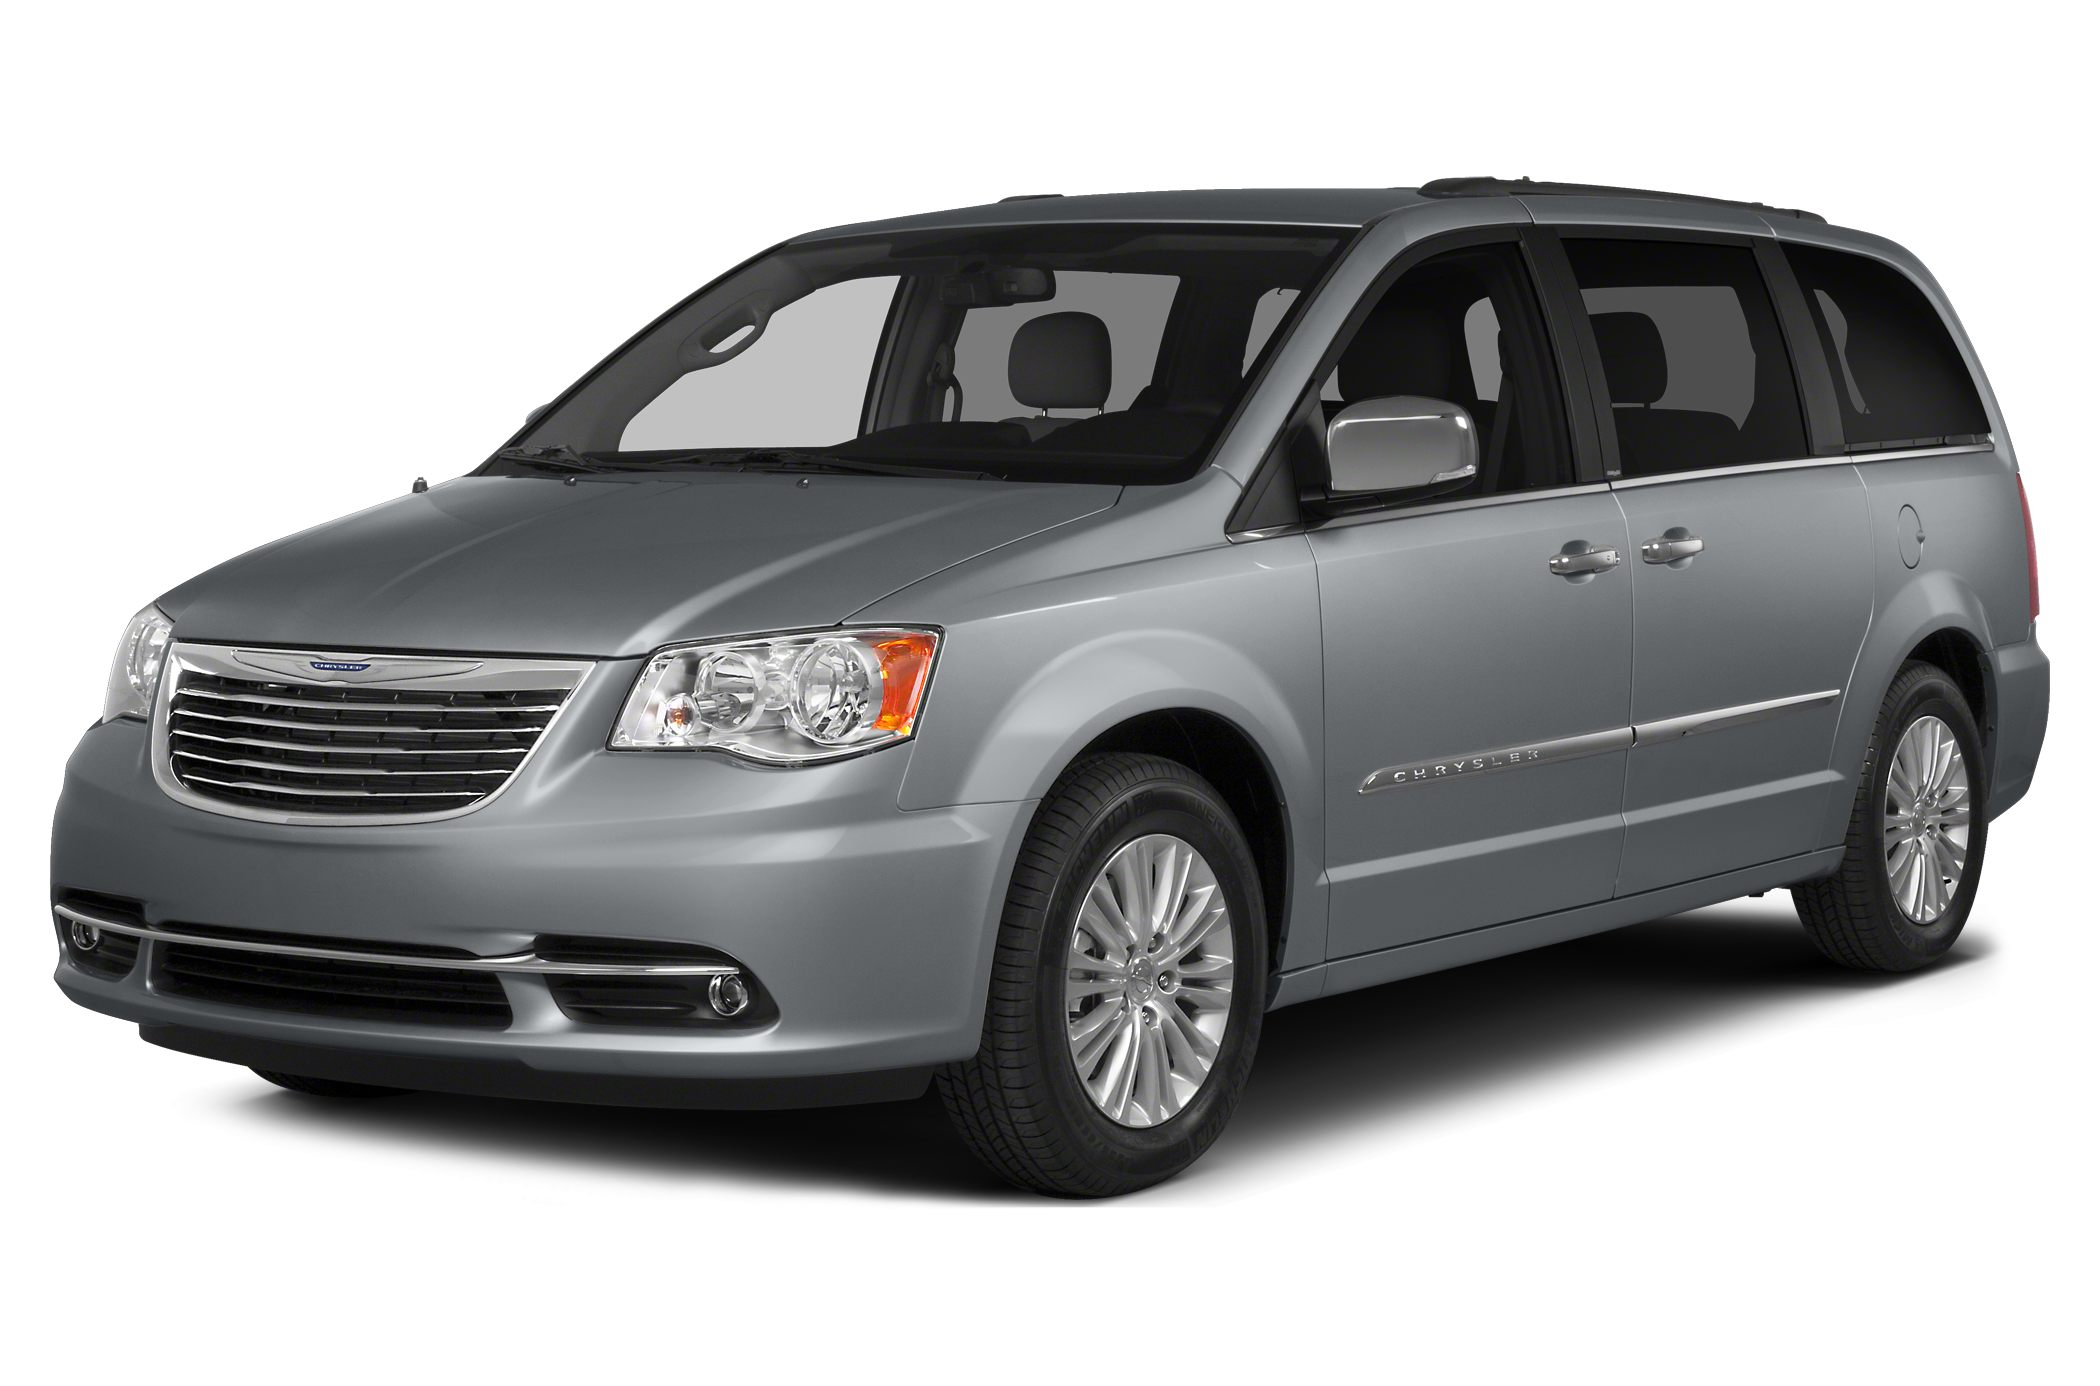 2014 Chrysler Town & Country Touring Minivan for sale in Lancaster for $20,996 with 46,353 miles